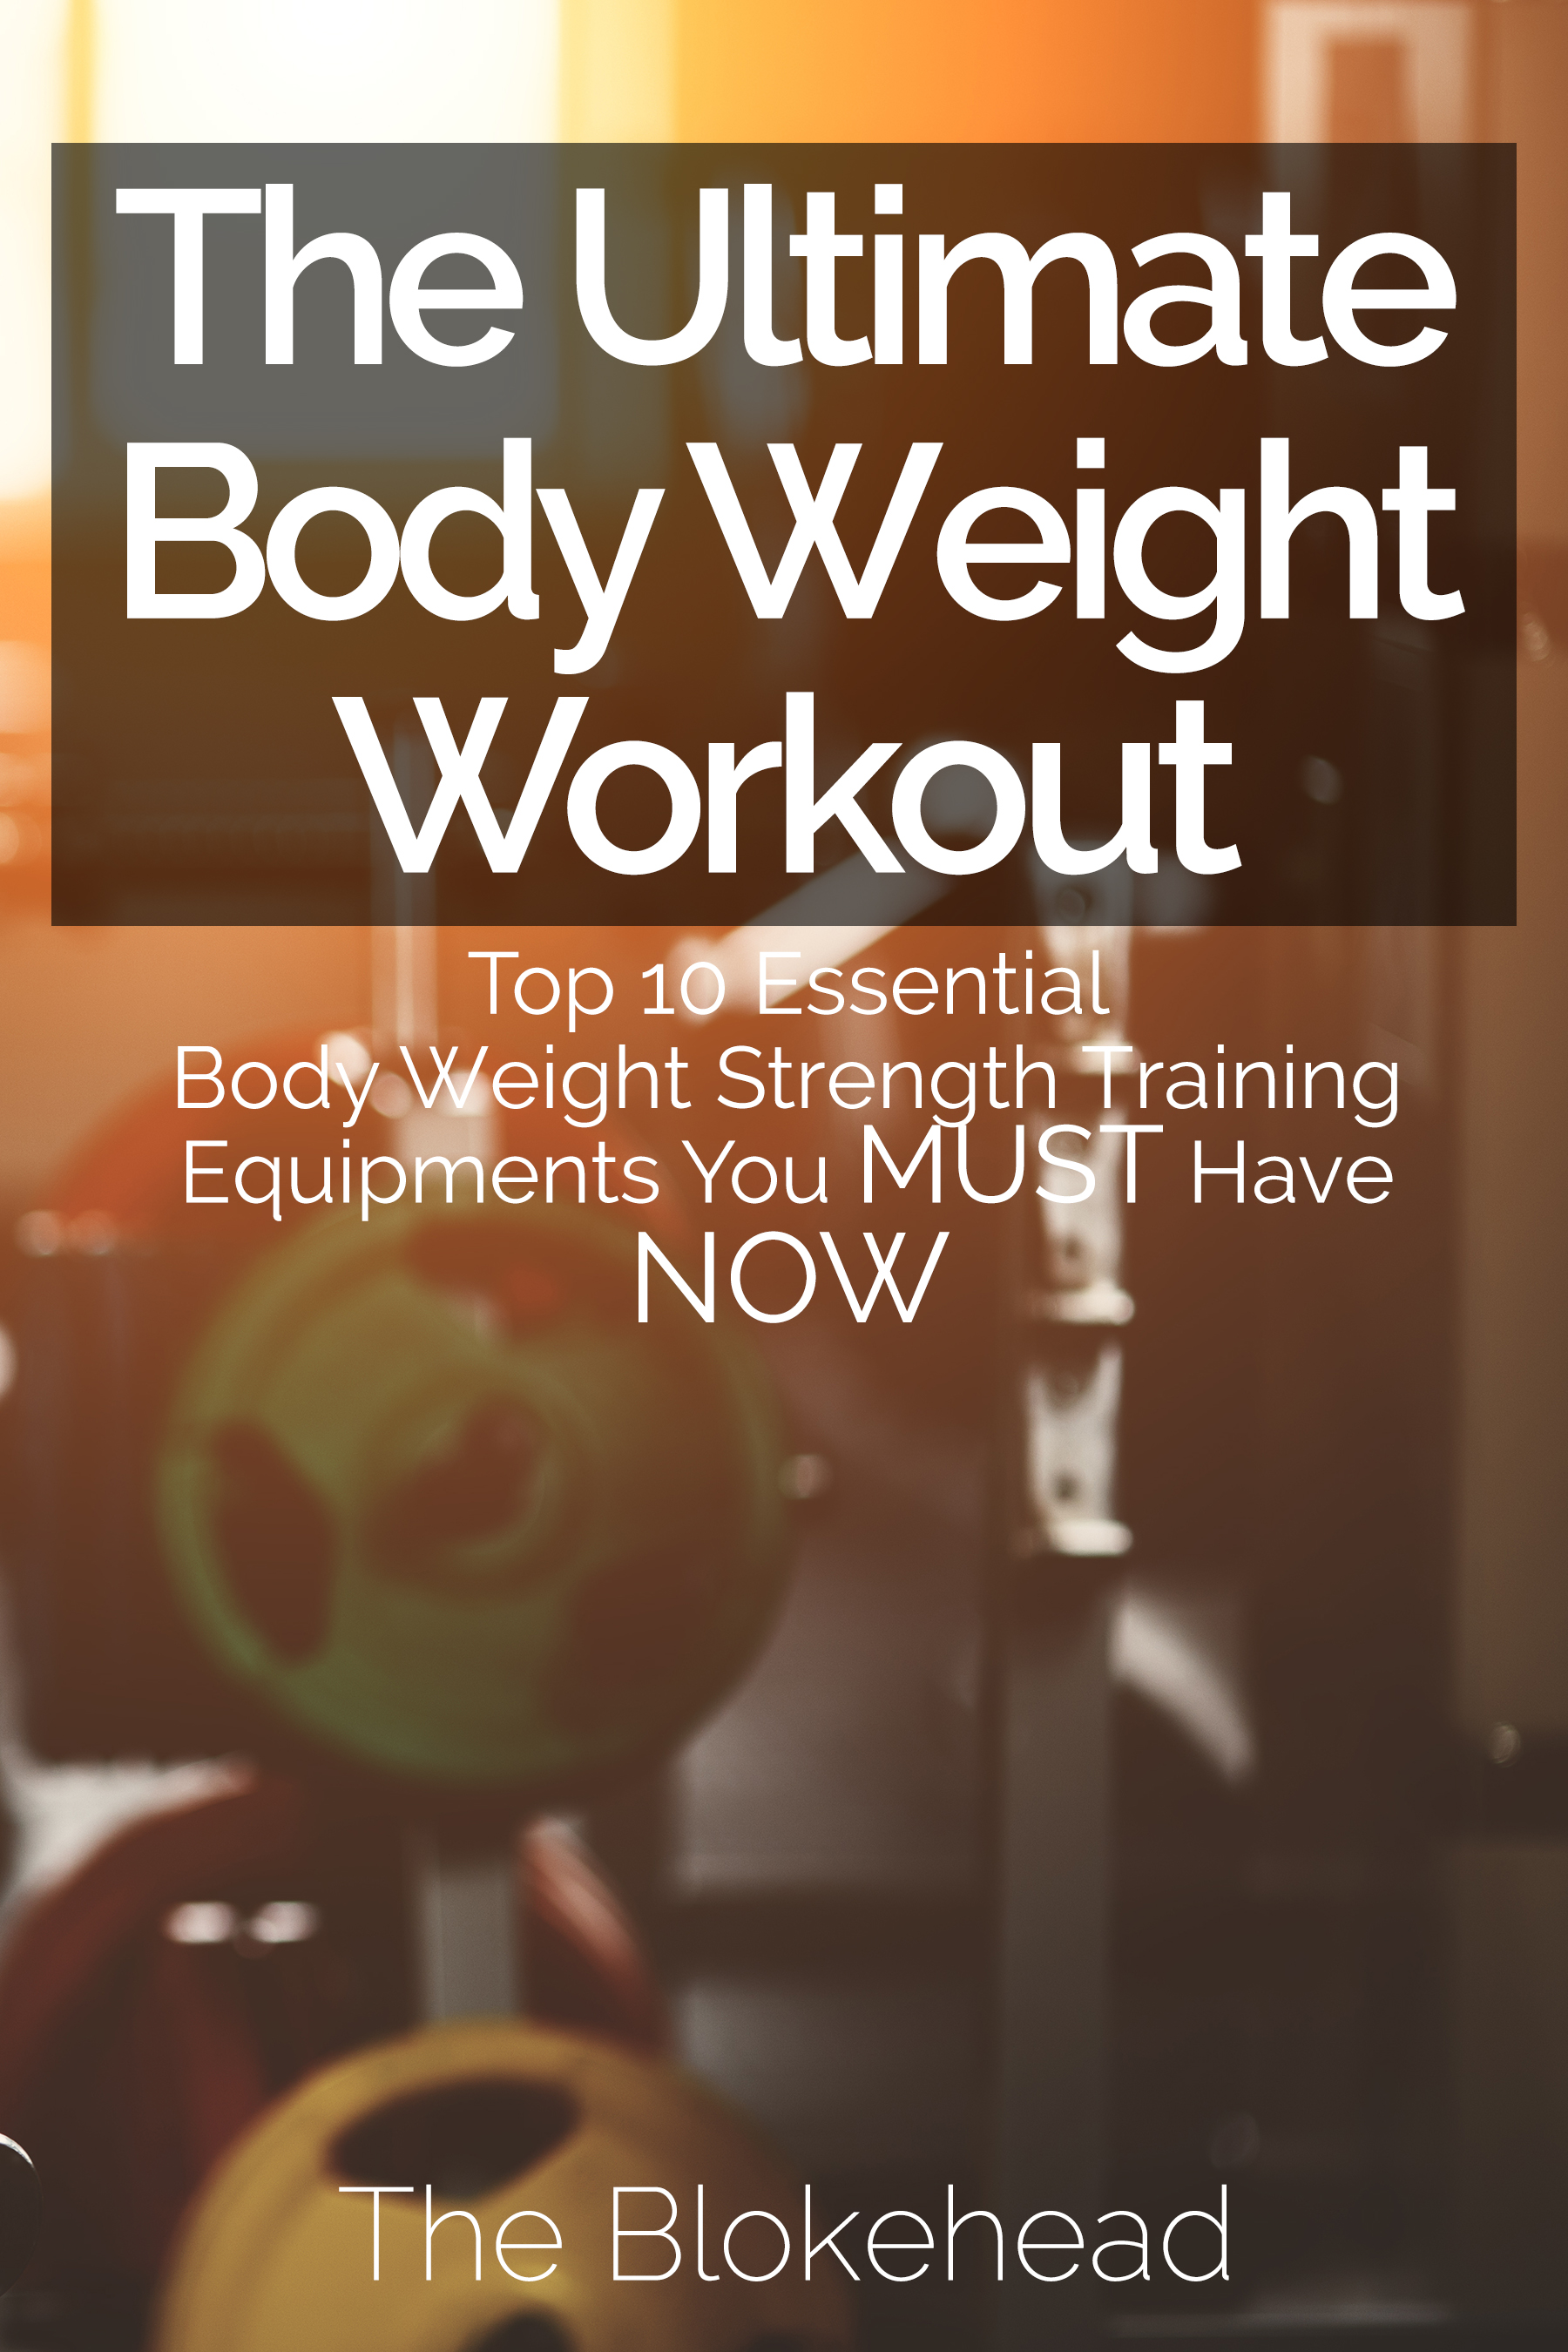 The ultimate bodyweight workout : top 10 essential body weight strength training equipments